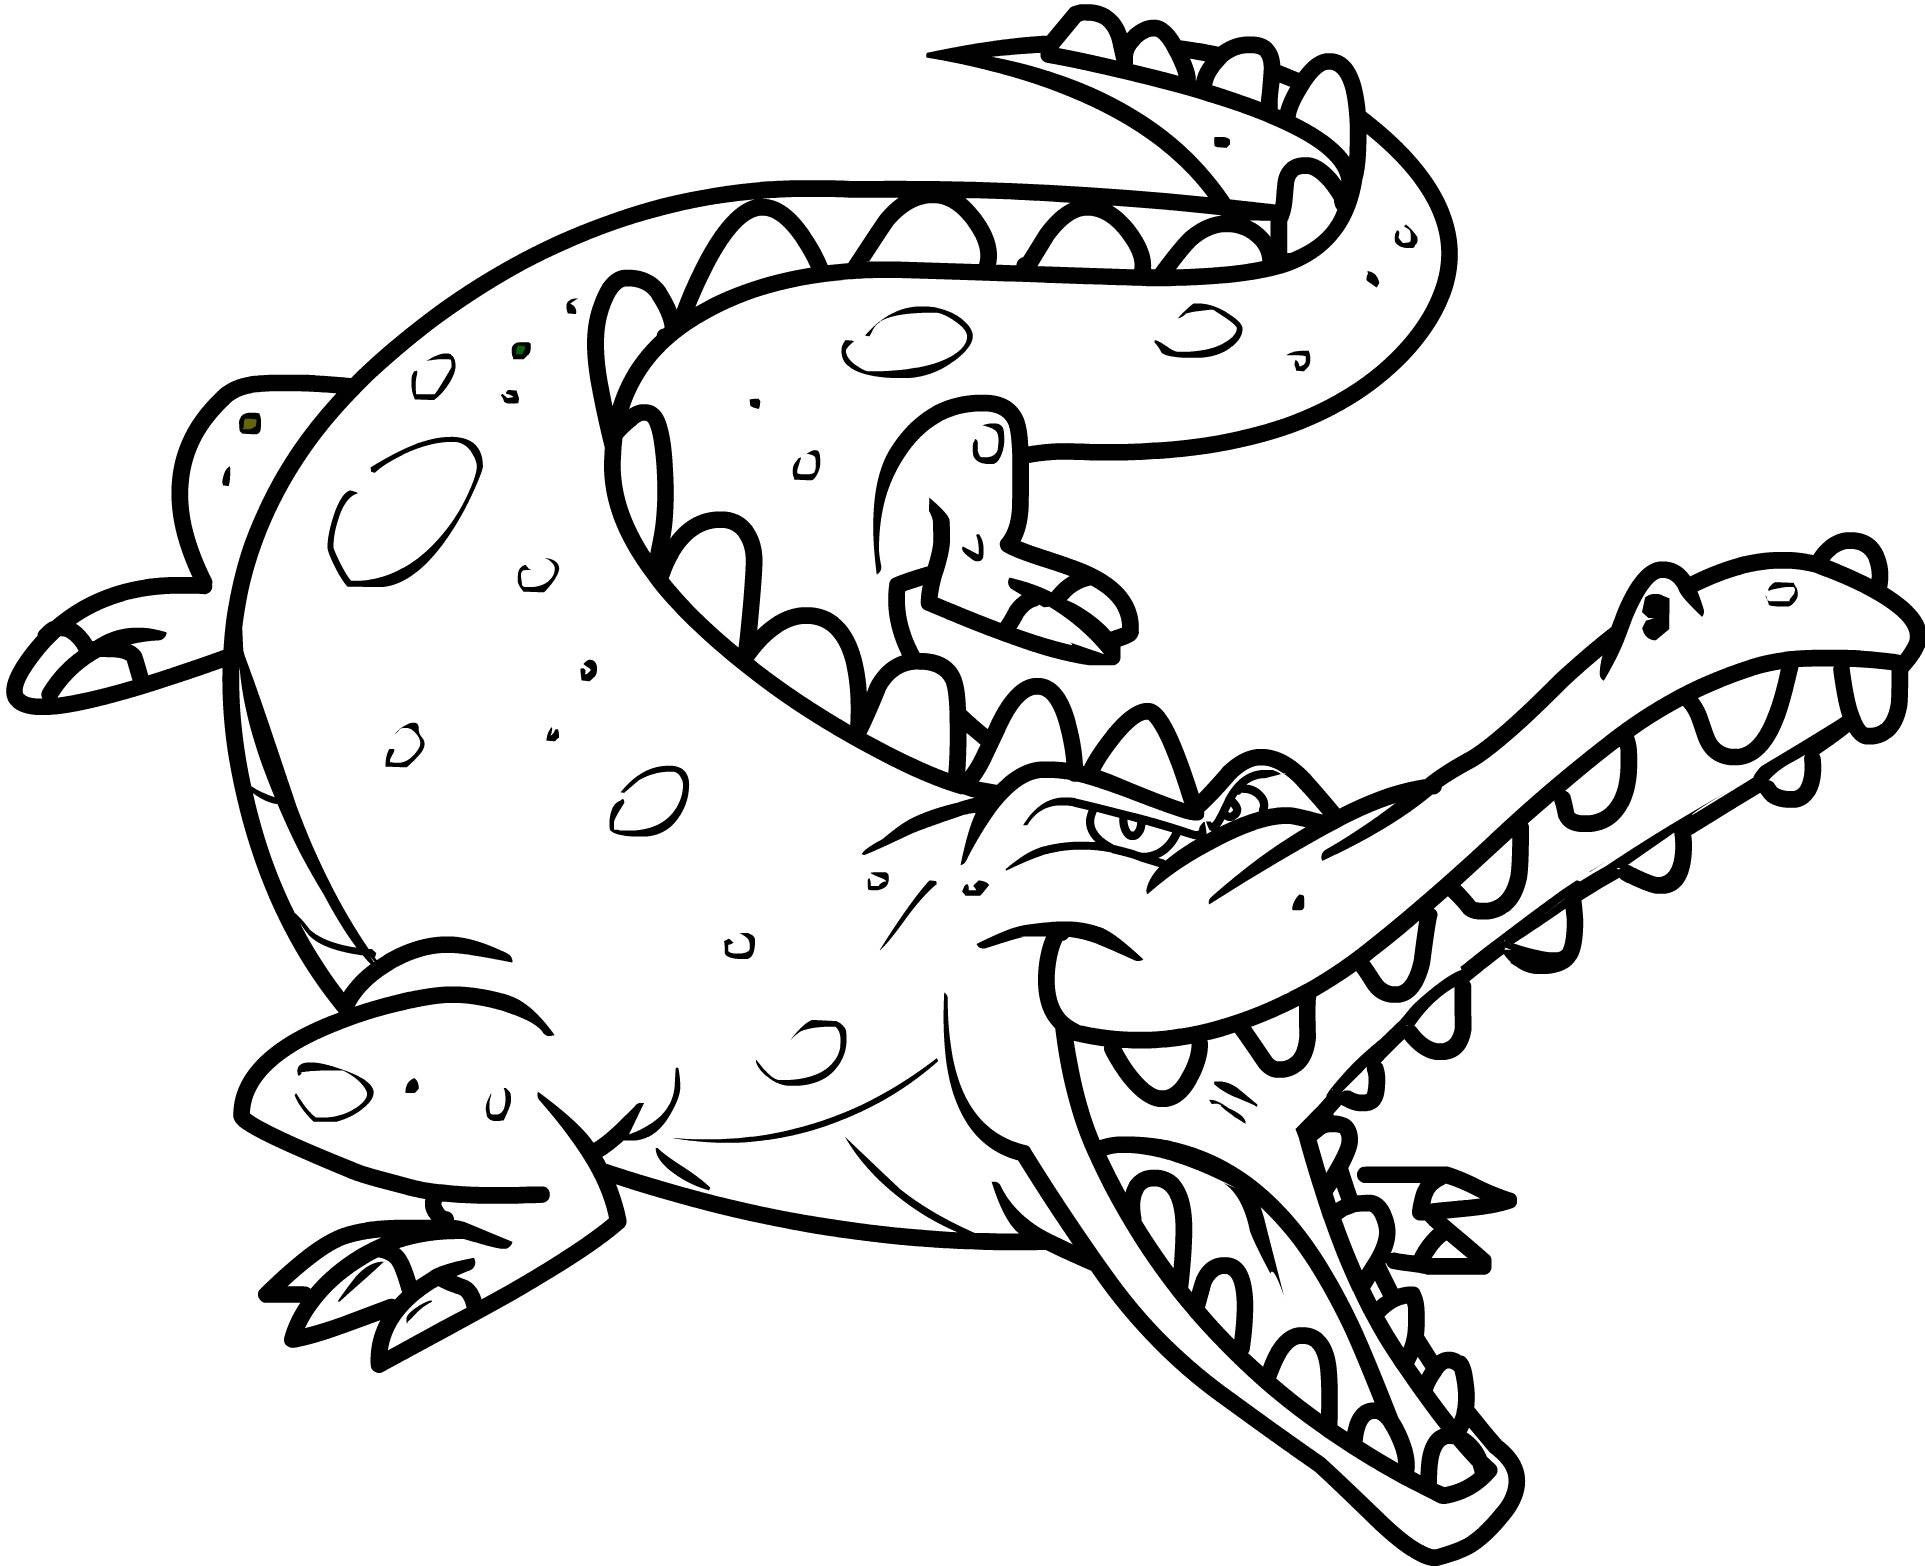 coloring pages of crocodiles | Crocodile Coloring Pages Printable ...